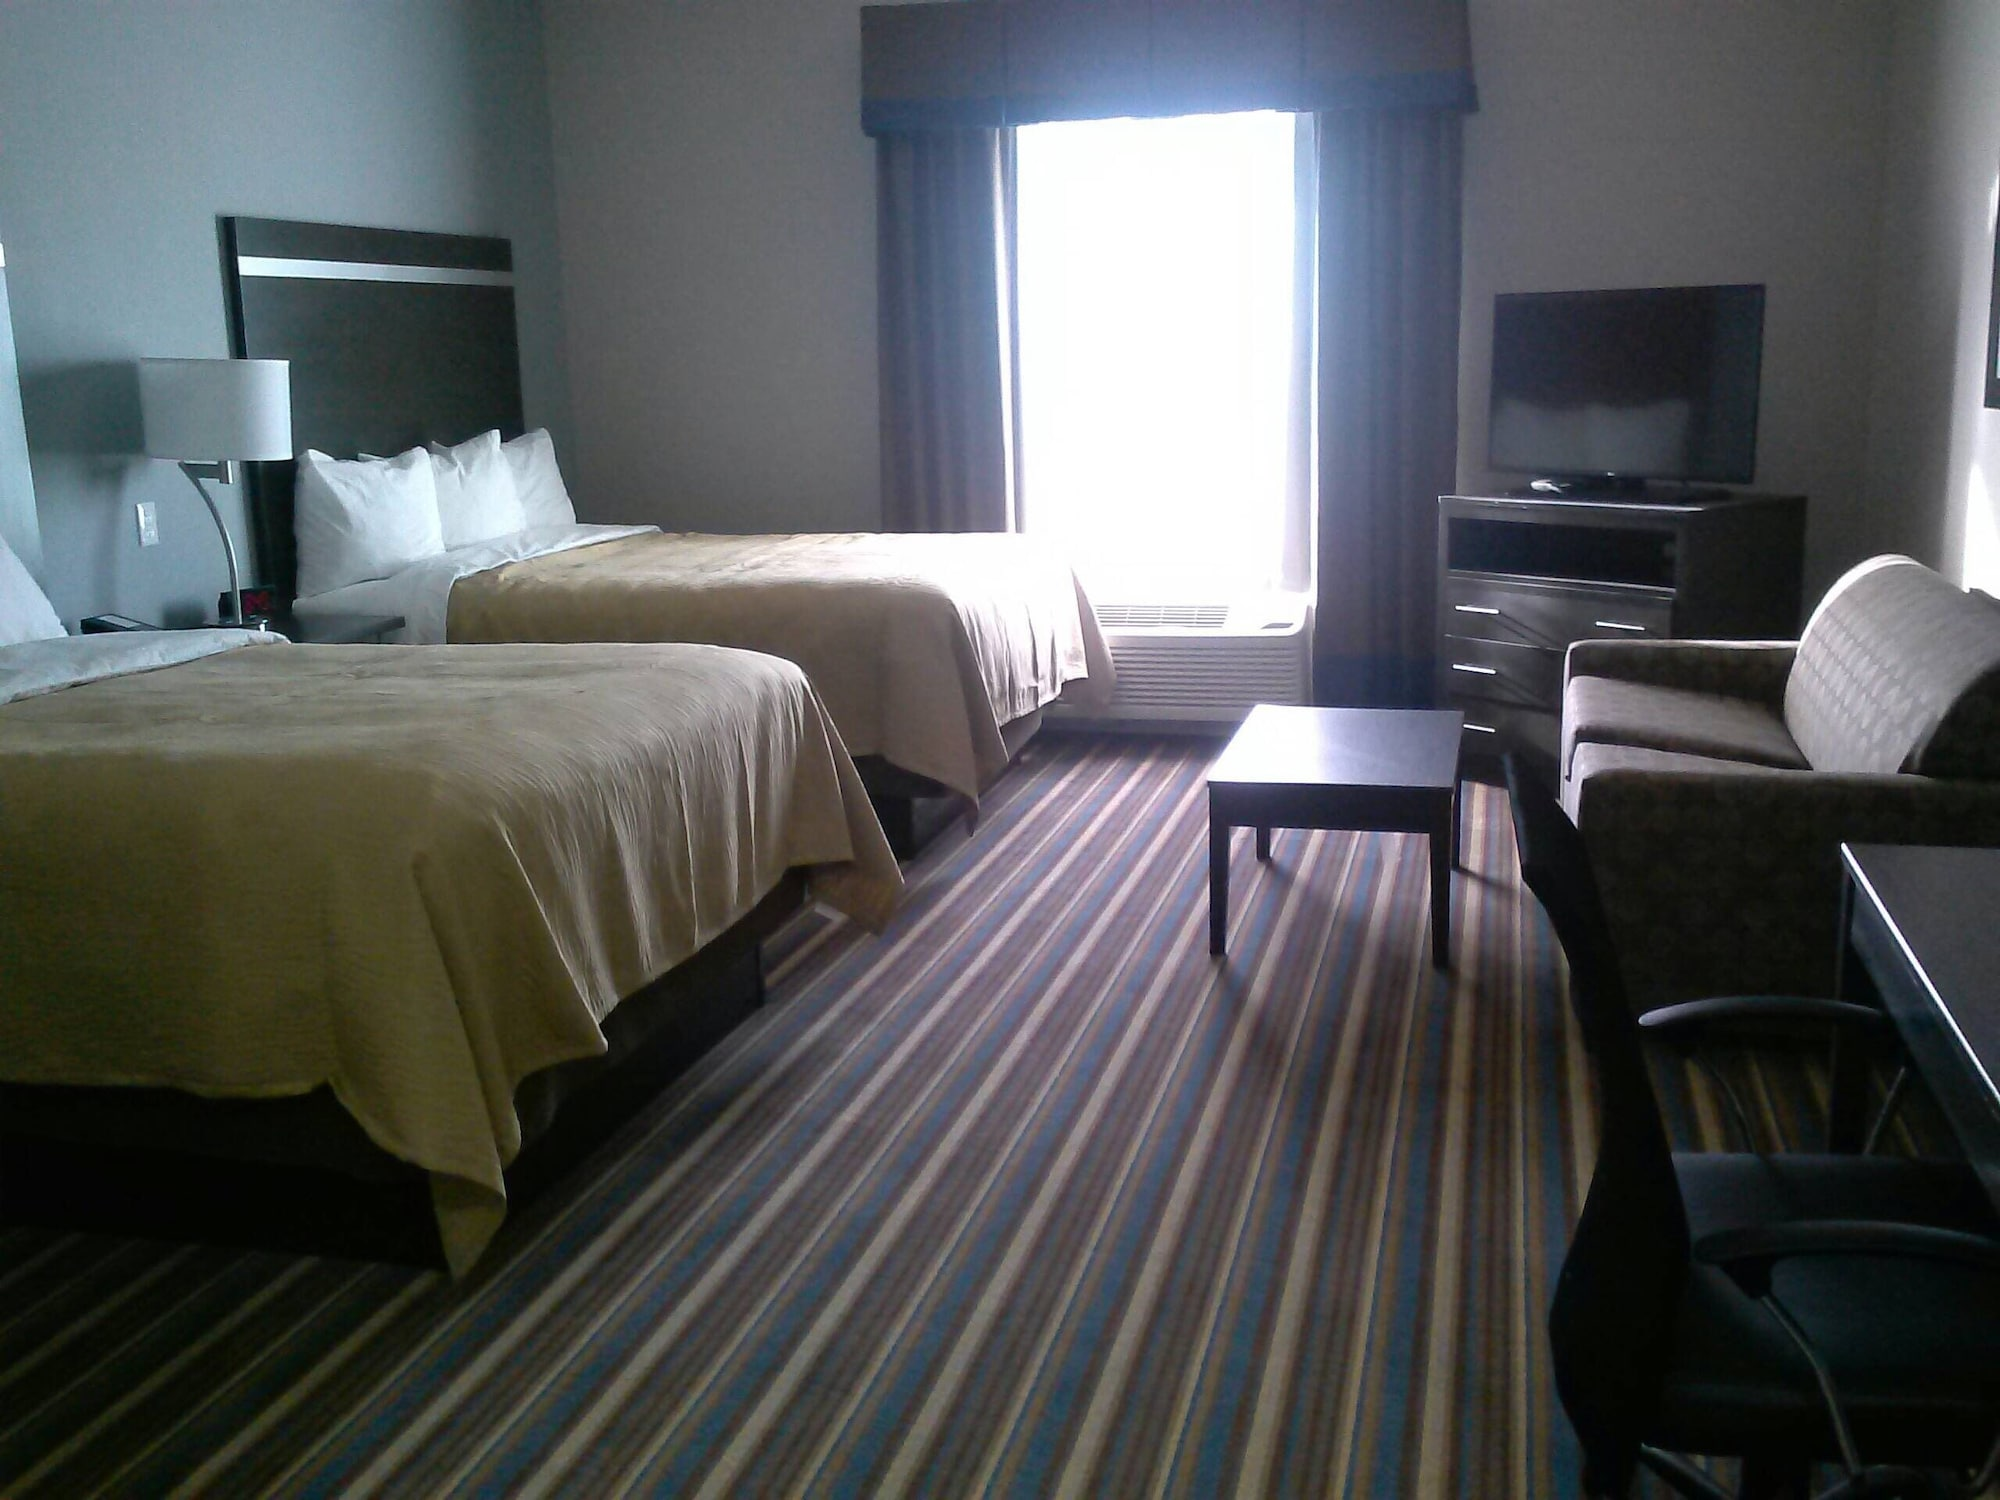 MainStay Suites, Ector